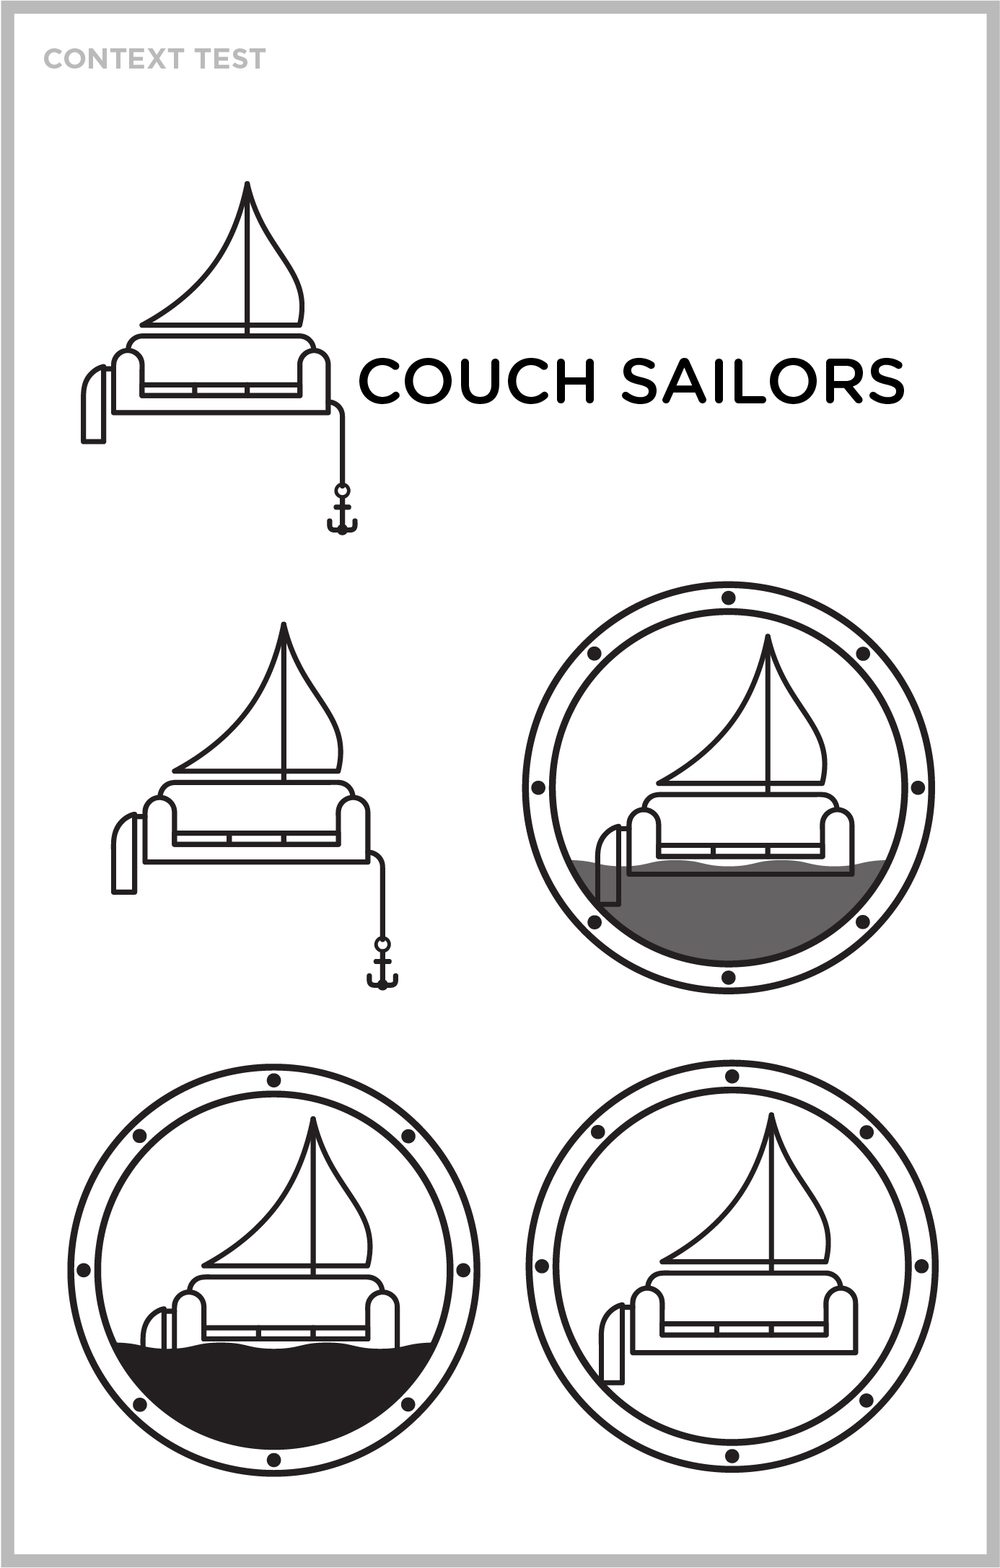 Couch Sailors-03.jpg